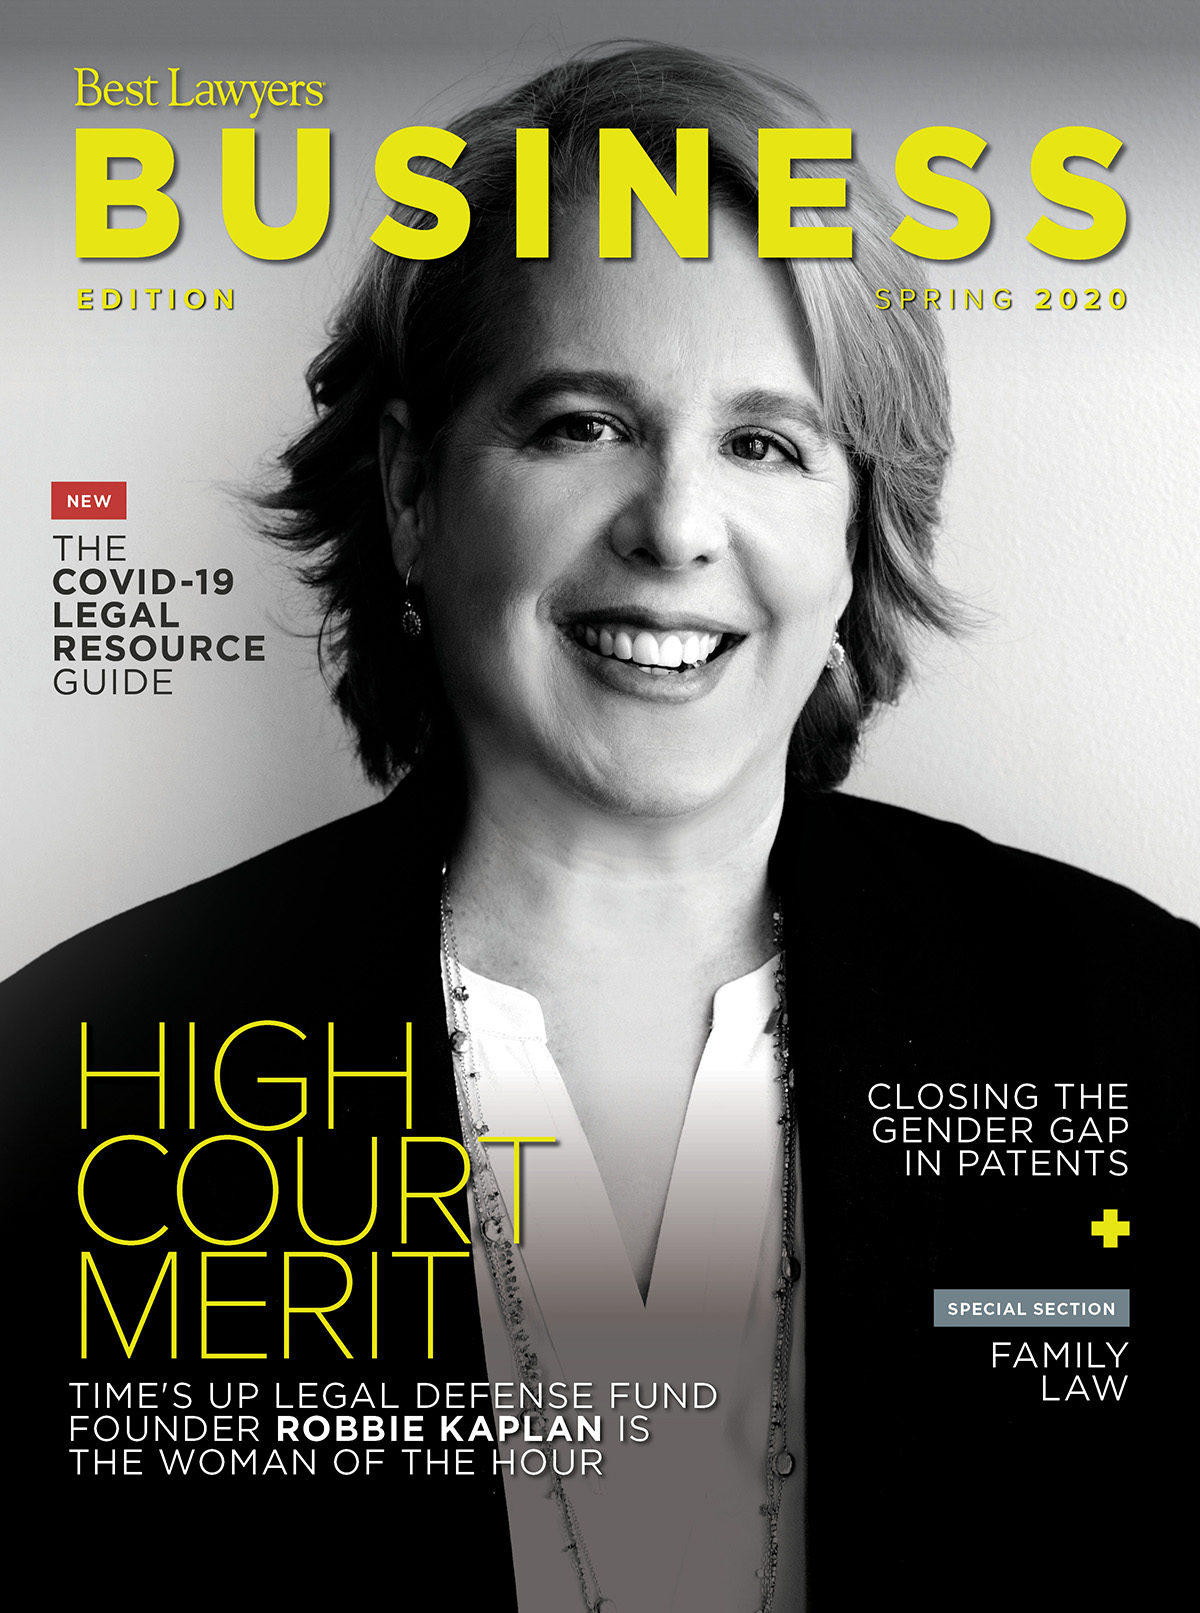 Spring Business Edition